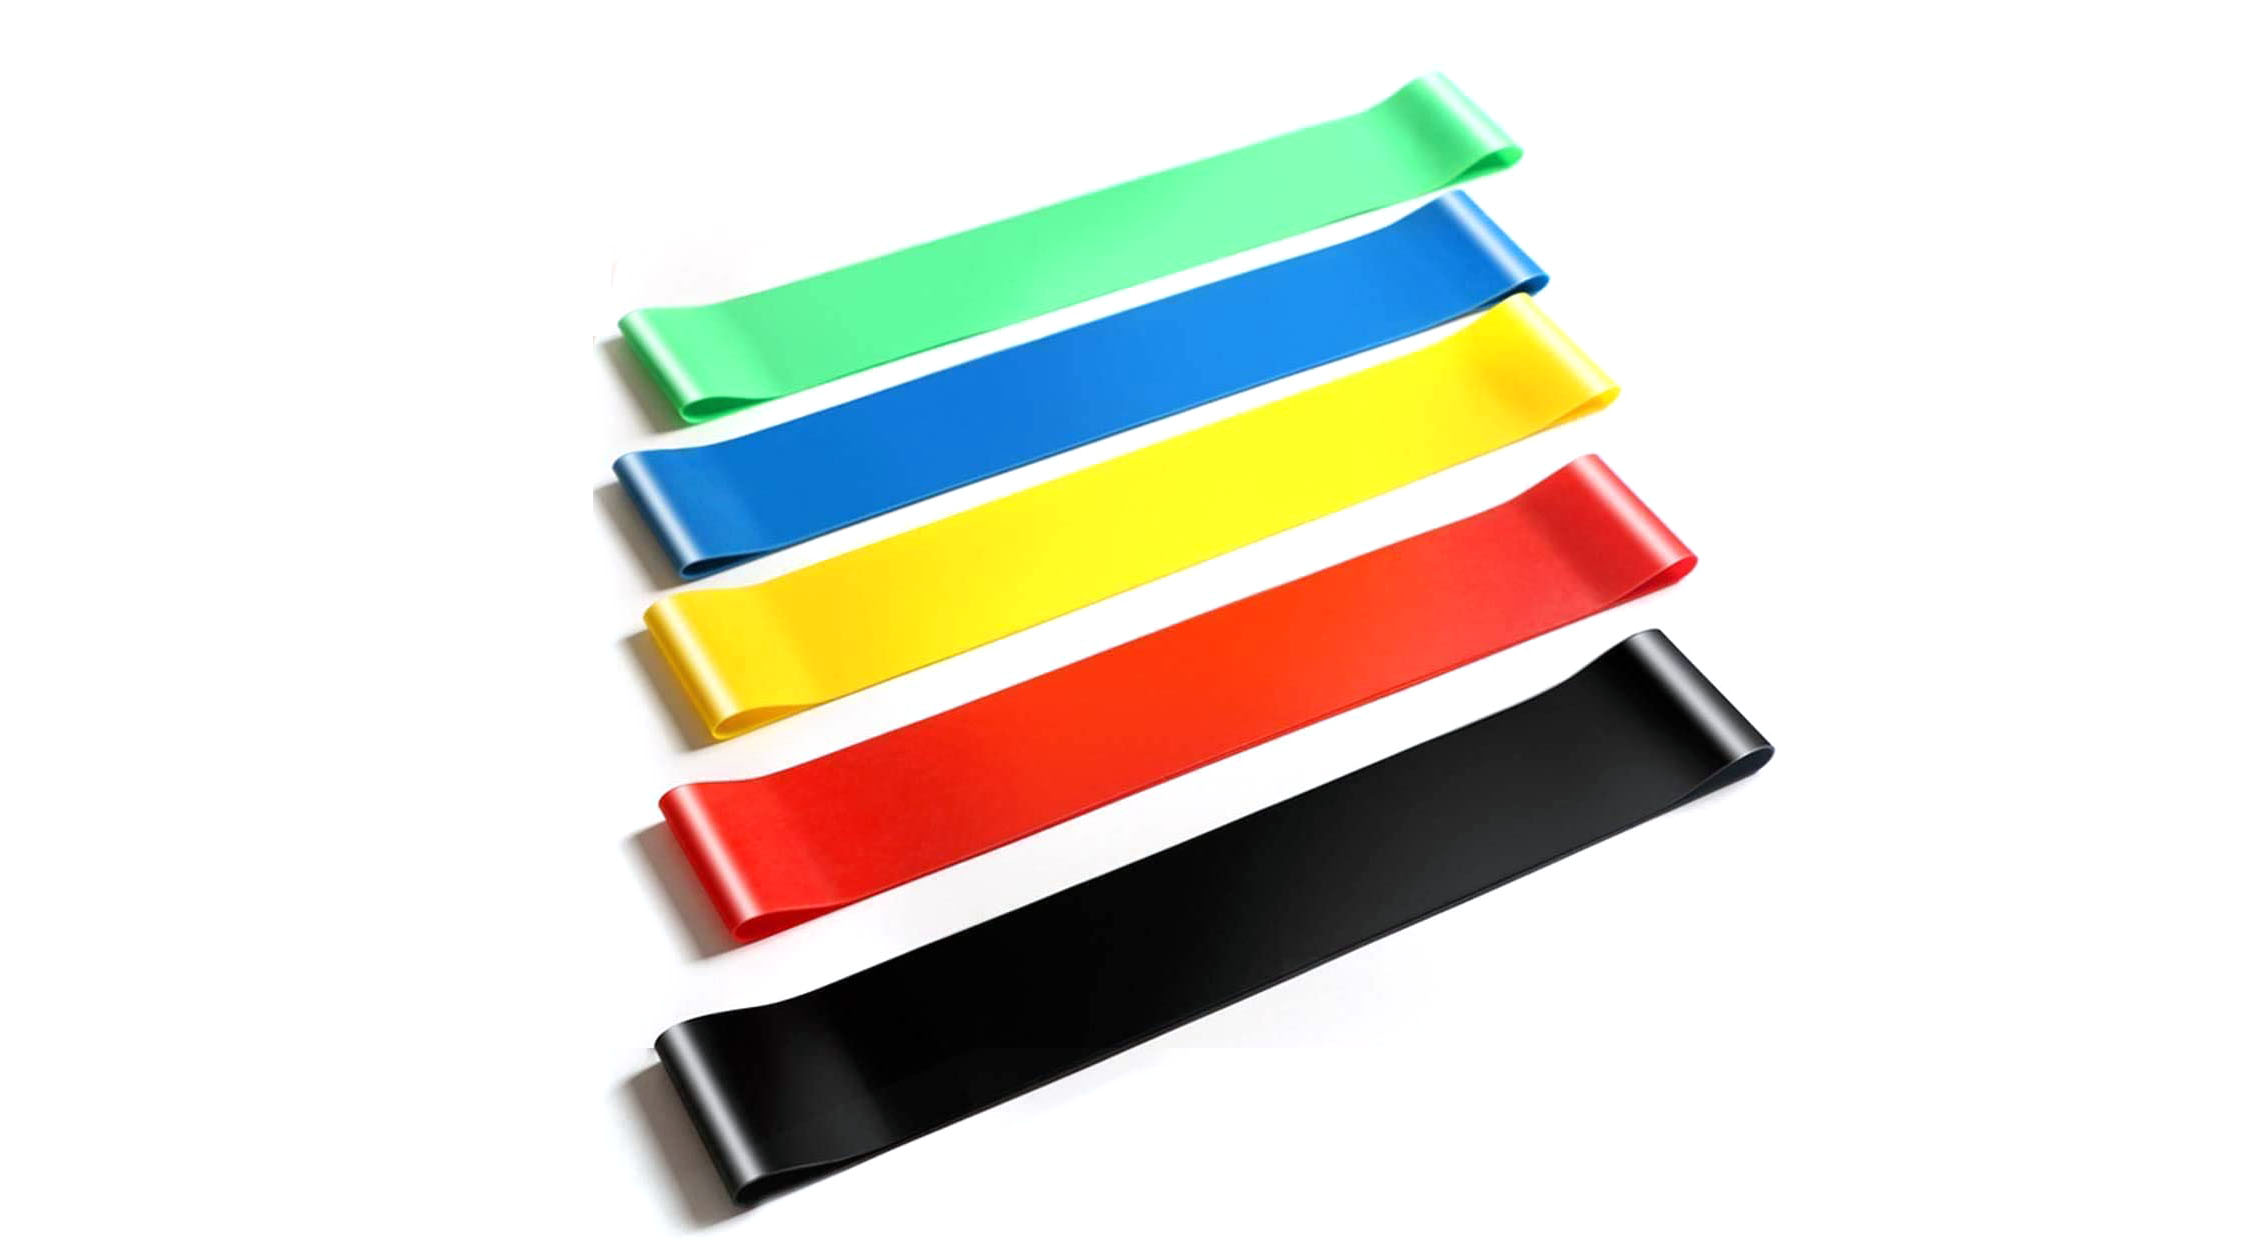 Fitnessband Non-Slip Durable Silicone Stretch Band Advanced Strength Training Resistance Bands Workouts Silicone Exercise Bands -DH-Silicone